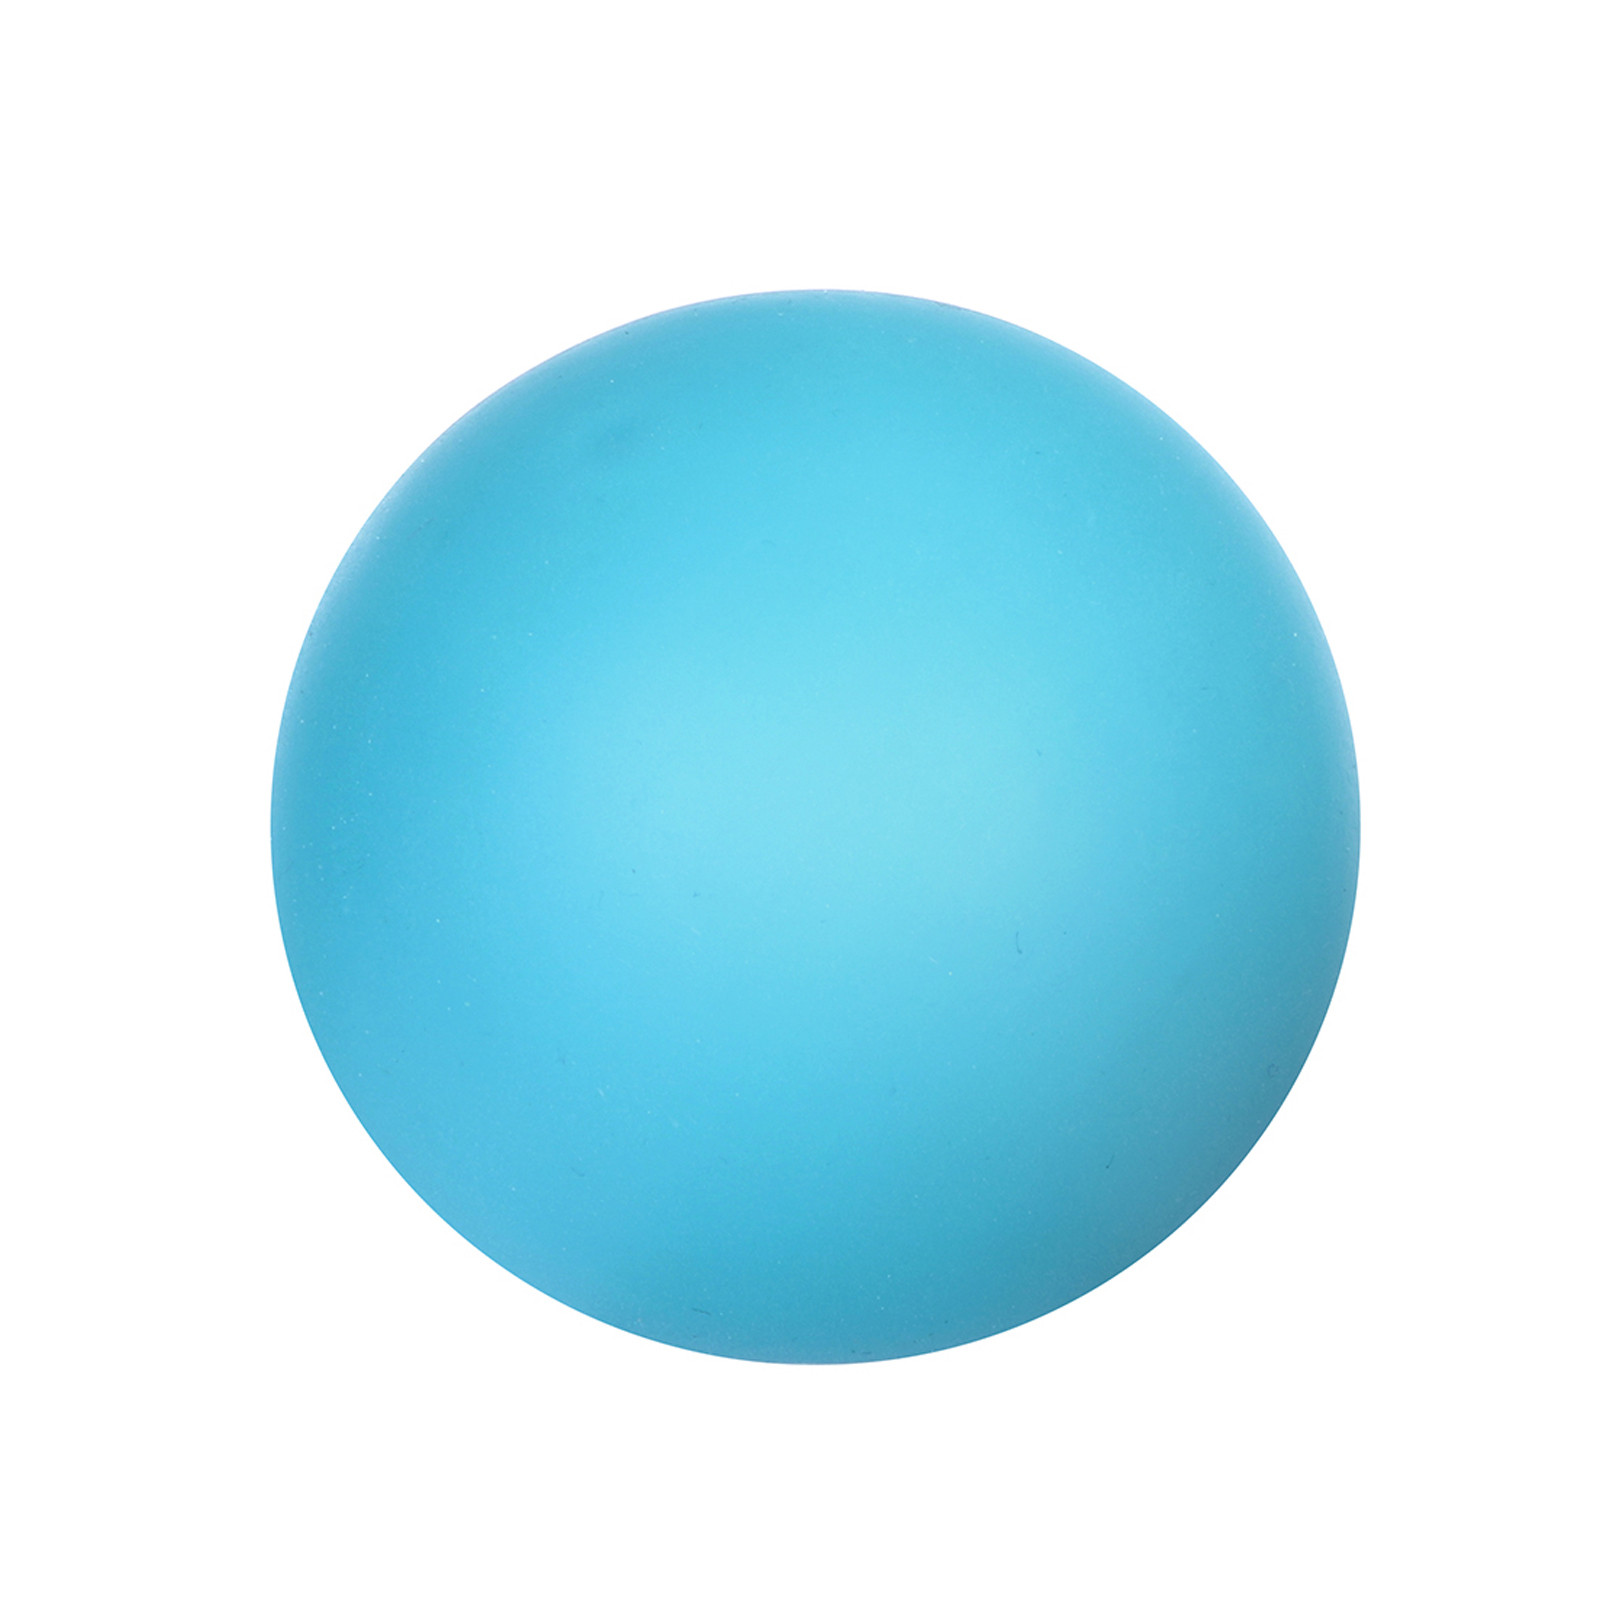 Stress Relief Ball Toys Change Colour Squeezing Balls For Kids And Adults Toy Decompression Toy For Children